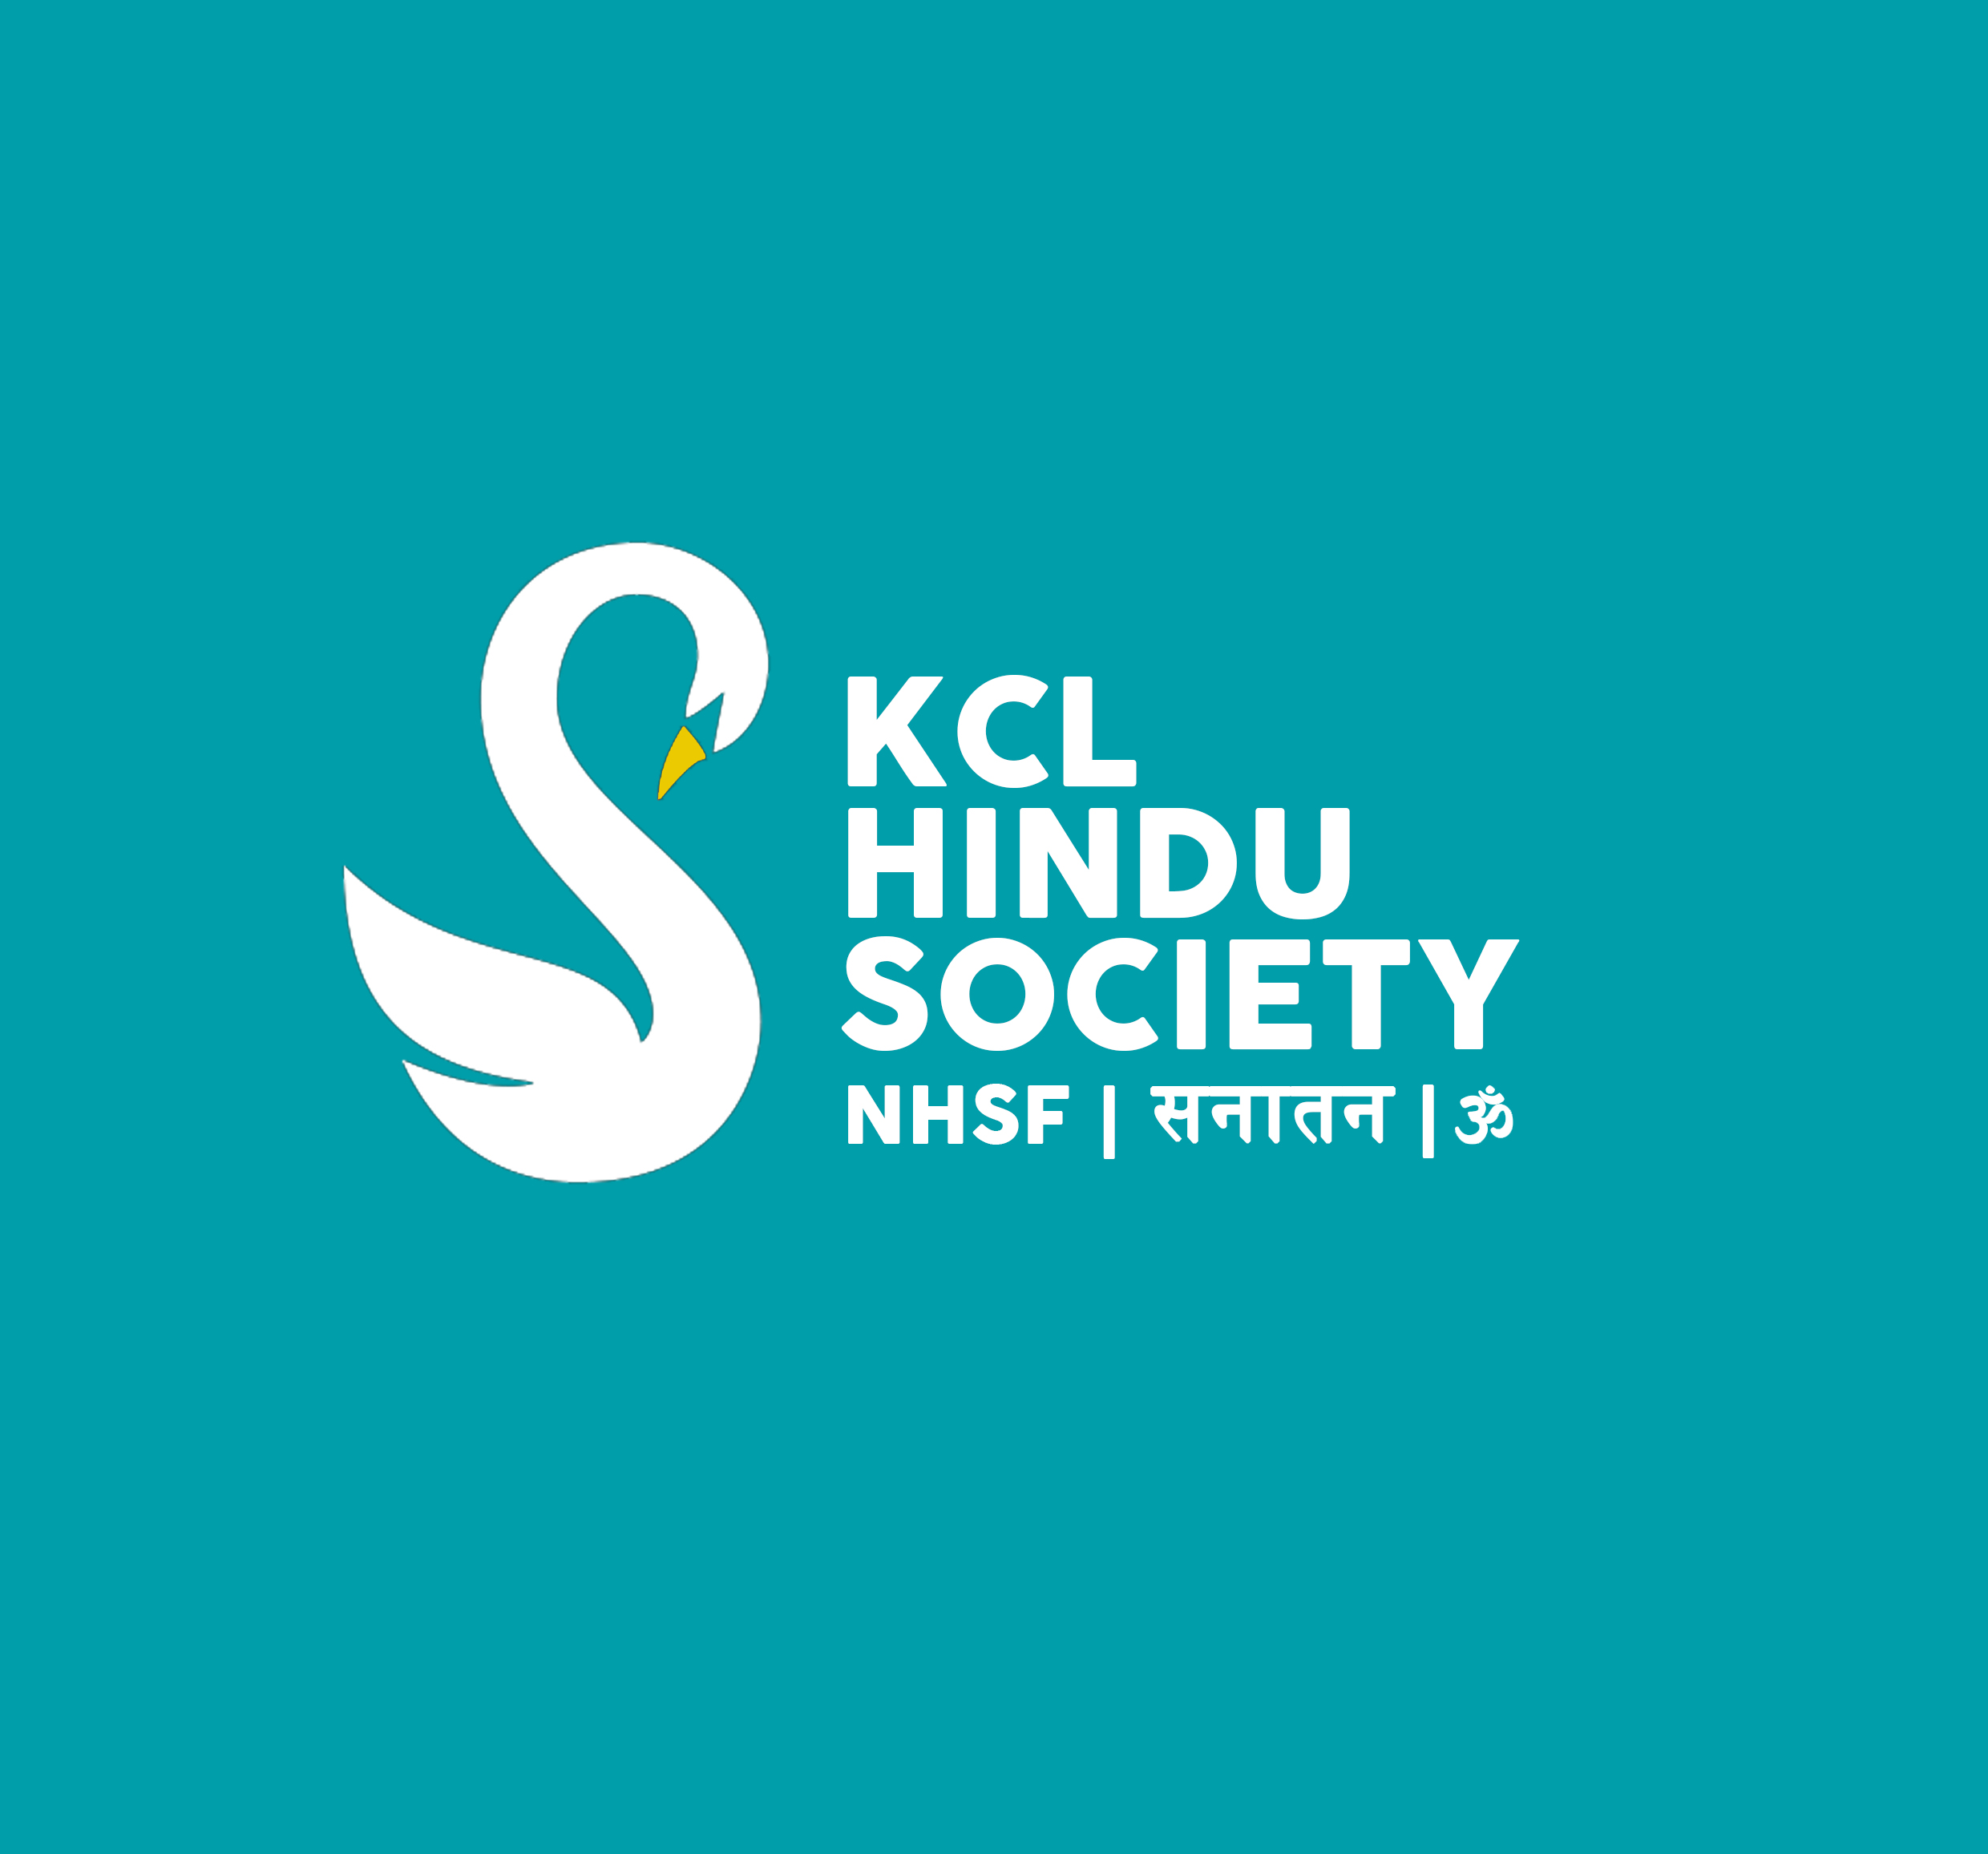 Kings Hindu Society